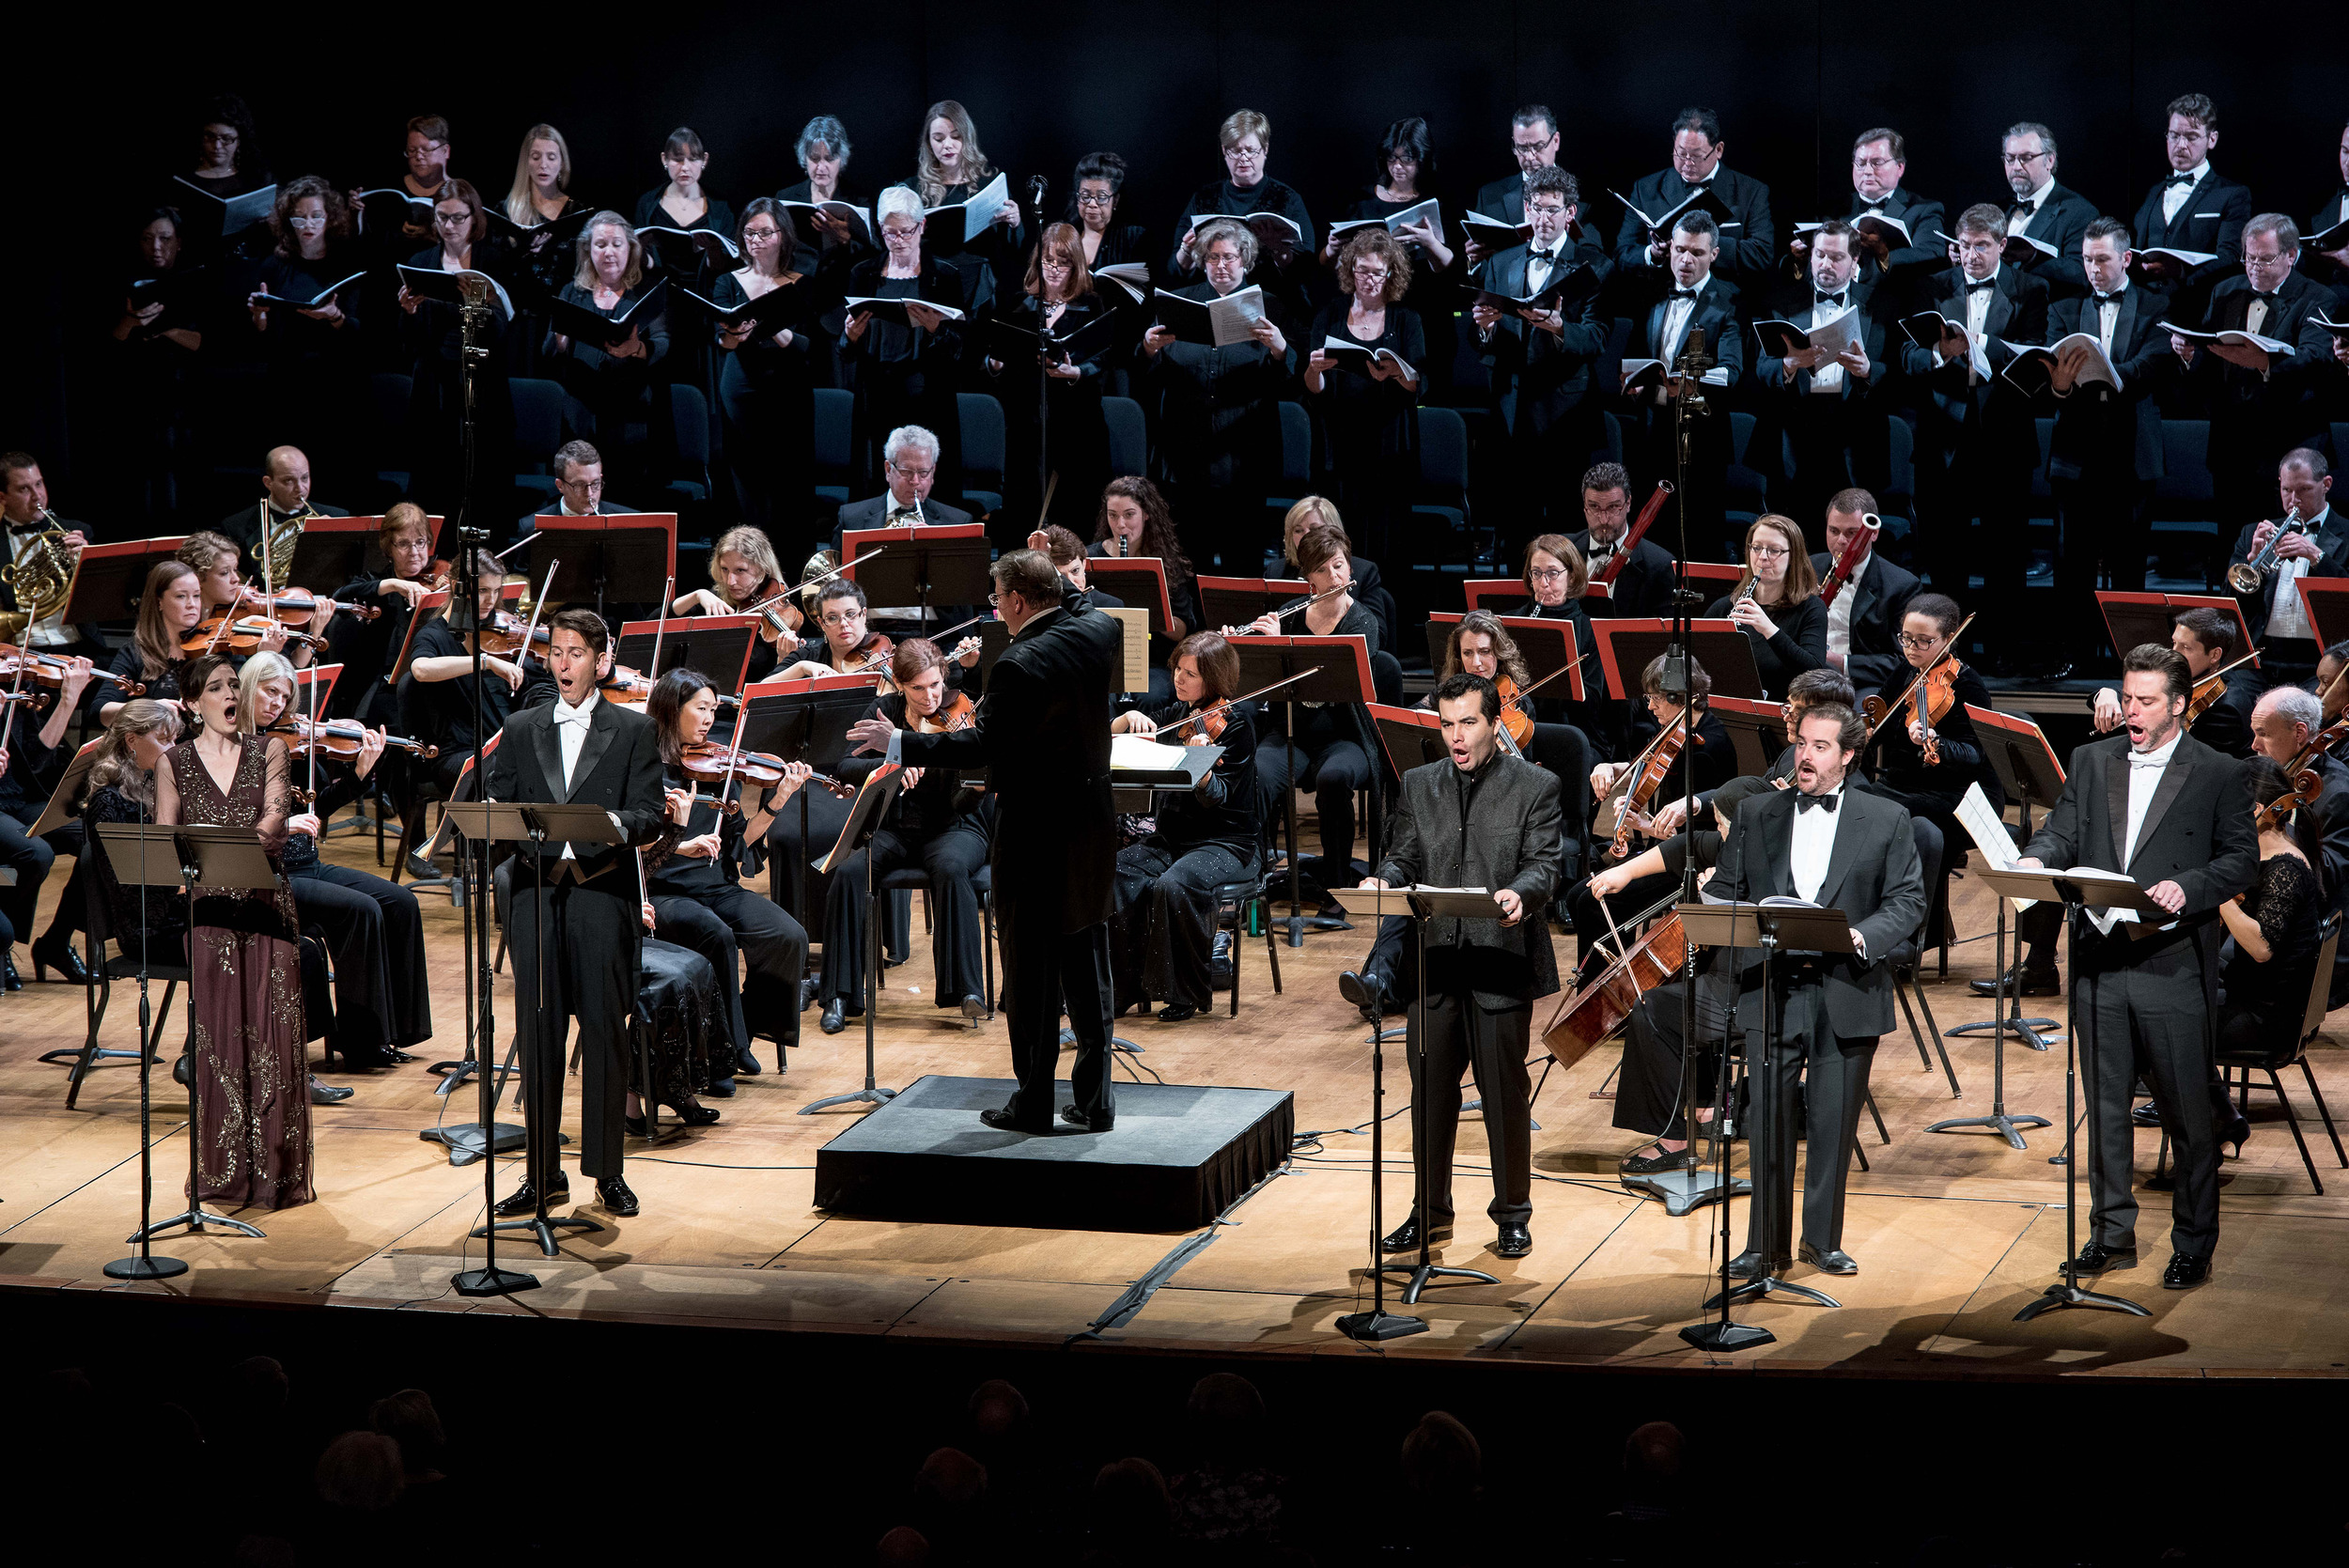 Photo credit: Don Lassell for Washington Concert Opera